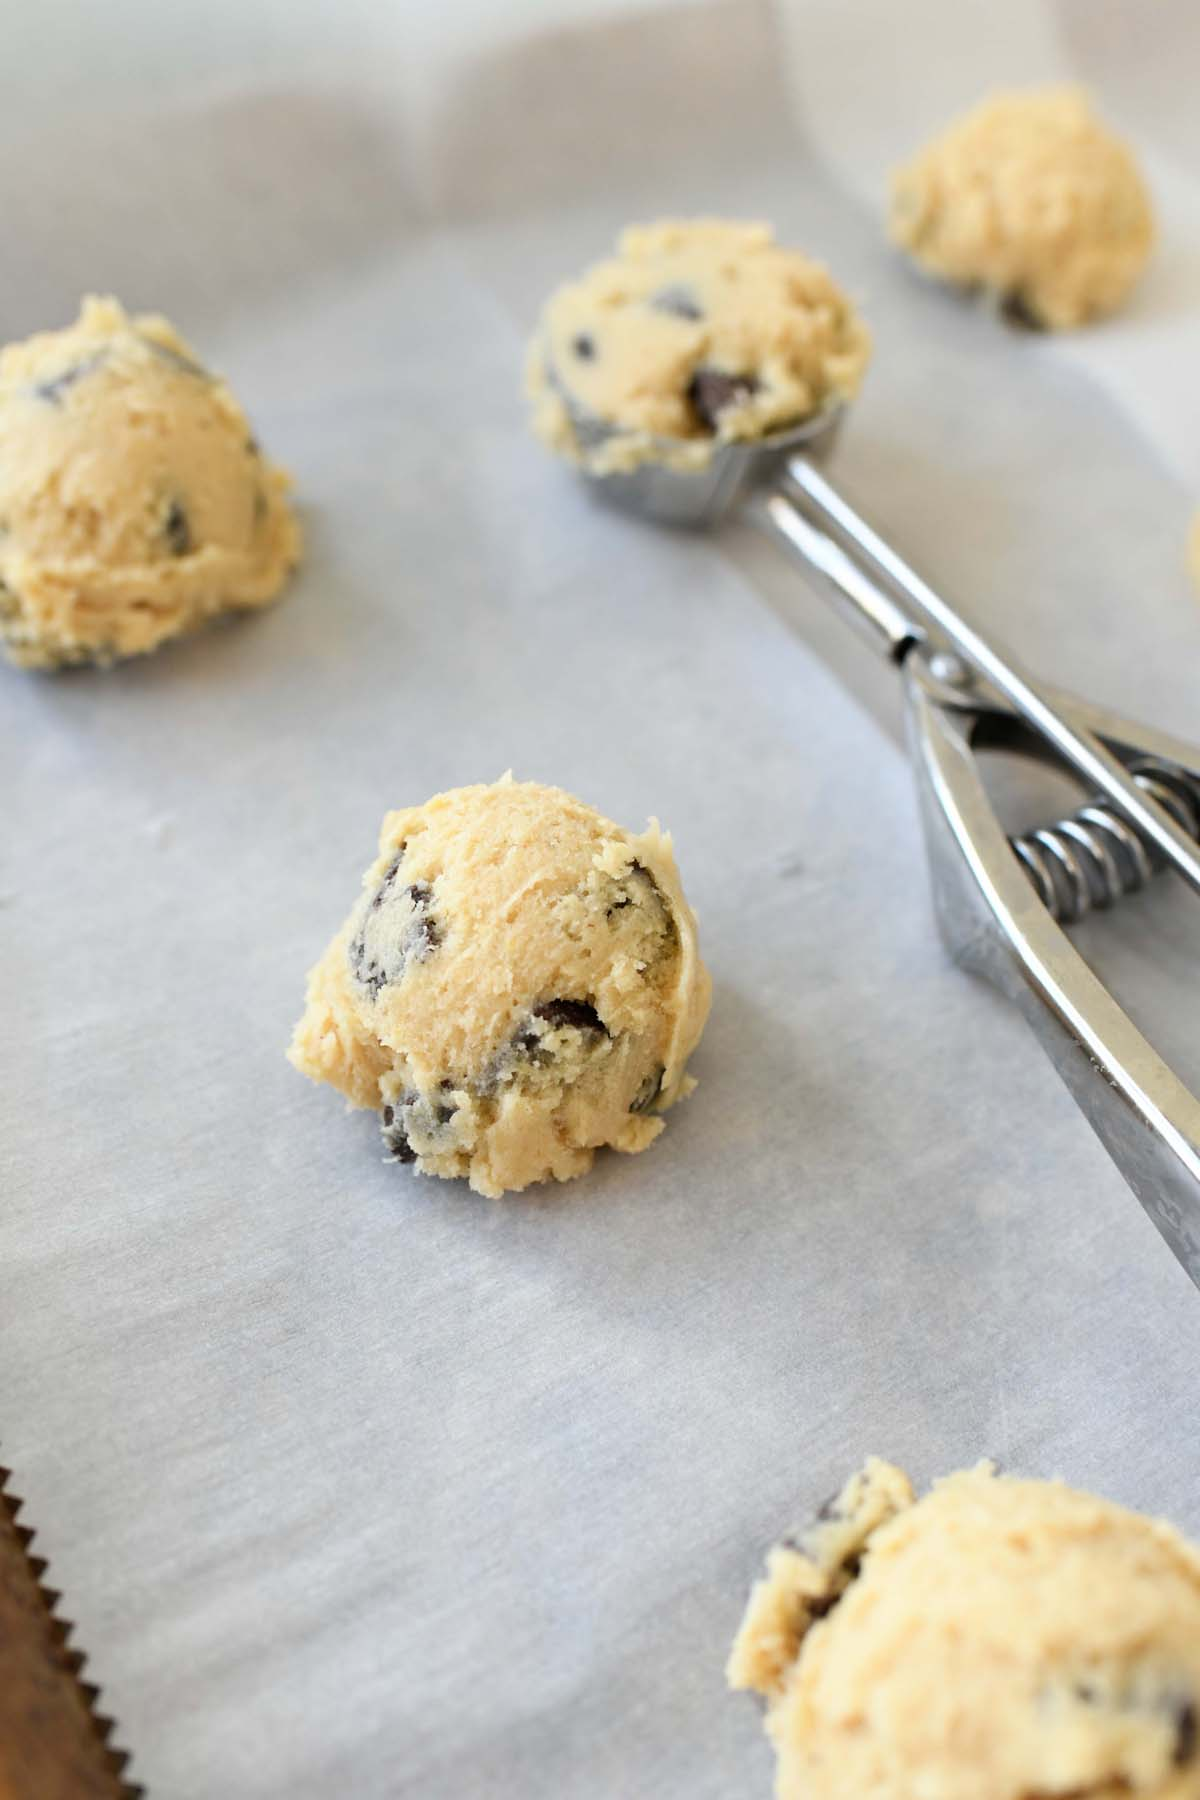 Chocolate Chip Cookie dough balls with a cookie scoop on a baking sheet.